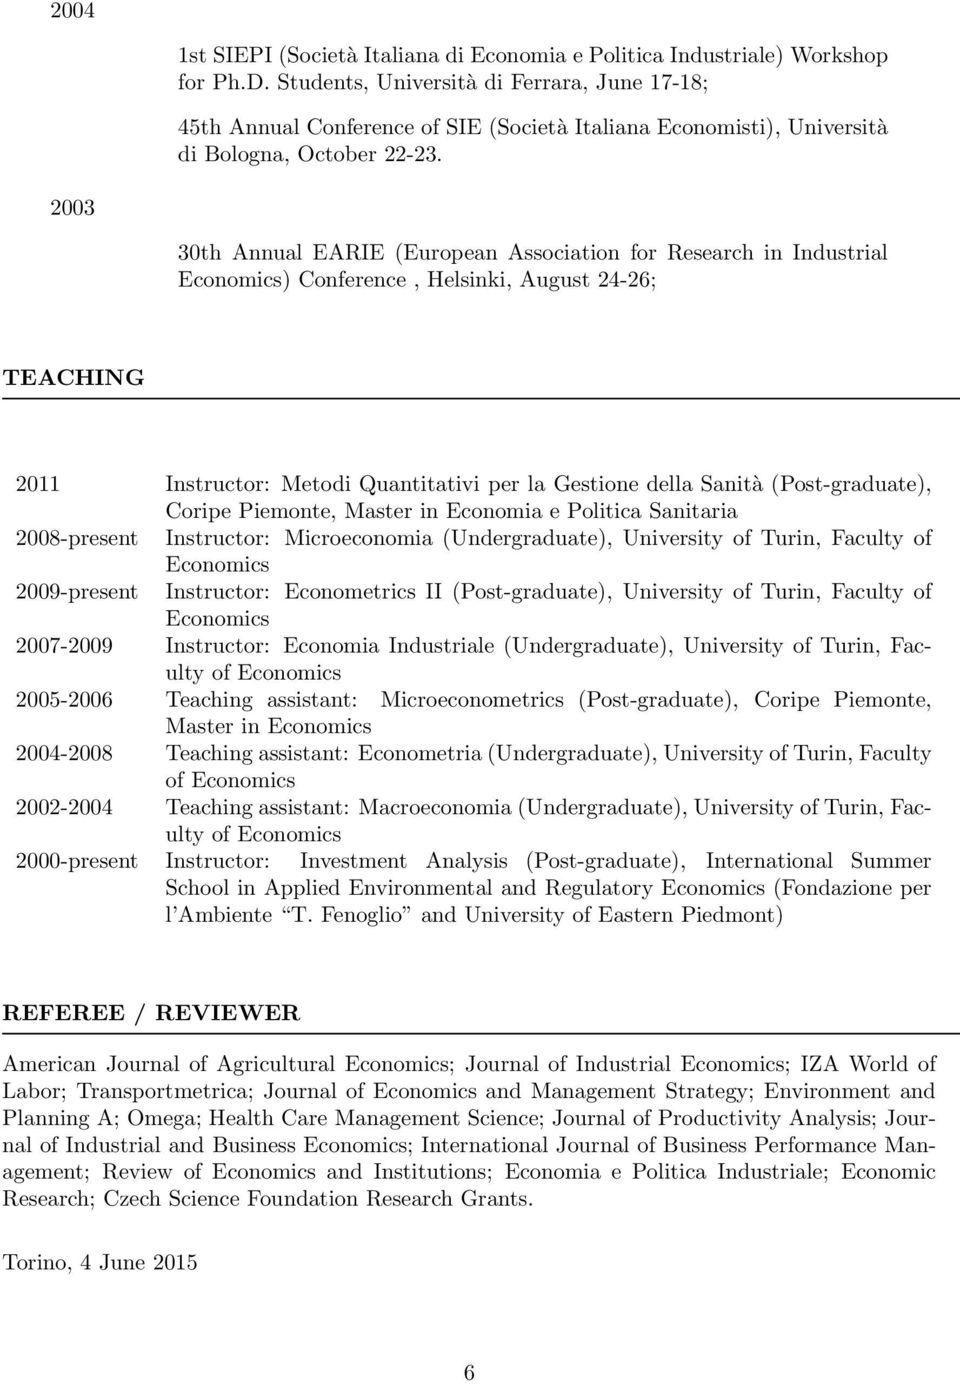 2003 30th Annual EARIE (European Association for Research in Industrial Economics) Conference, Helsinki, August 24-26; TEACHING 2011 Instructor: Metodi Quantitativi per la Gestione della Sanità